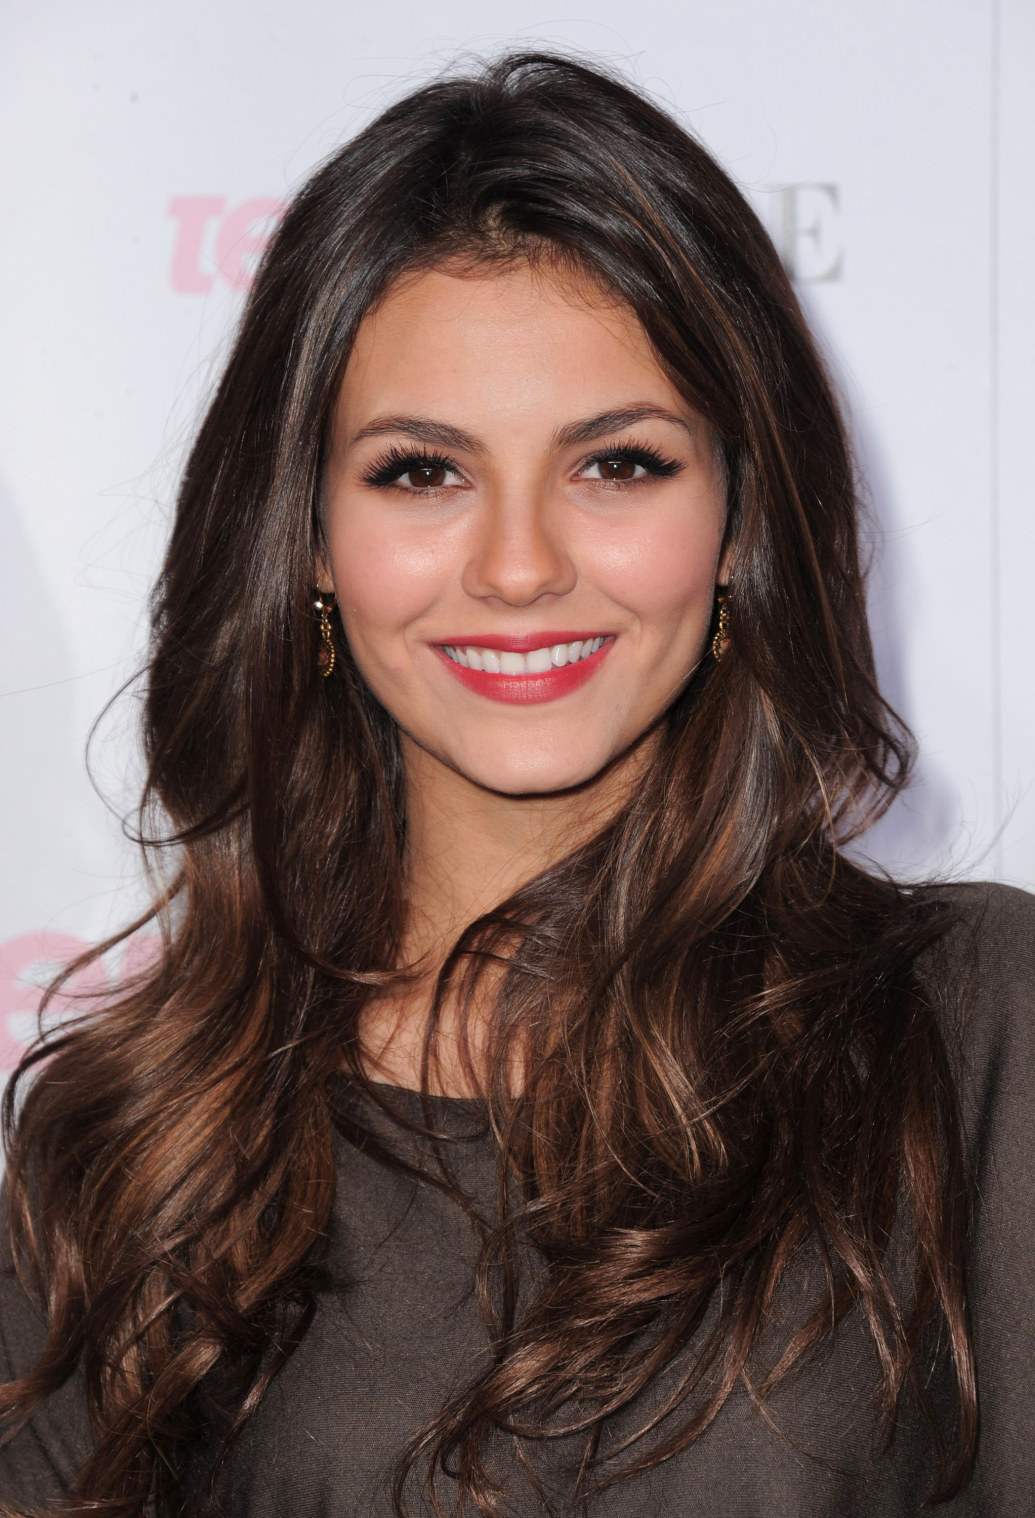 Victoria Justice - Images Gallery